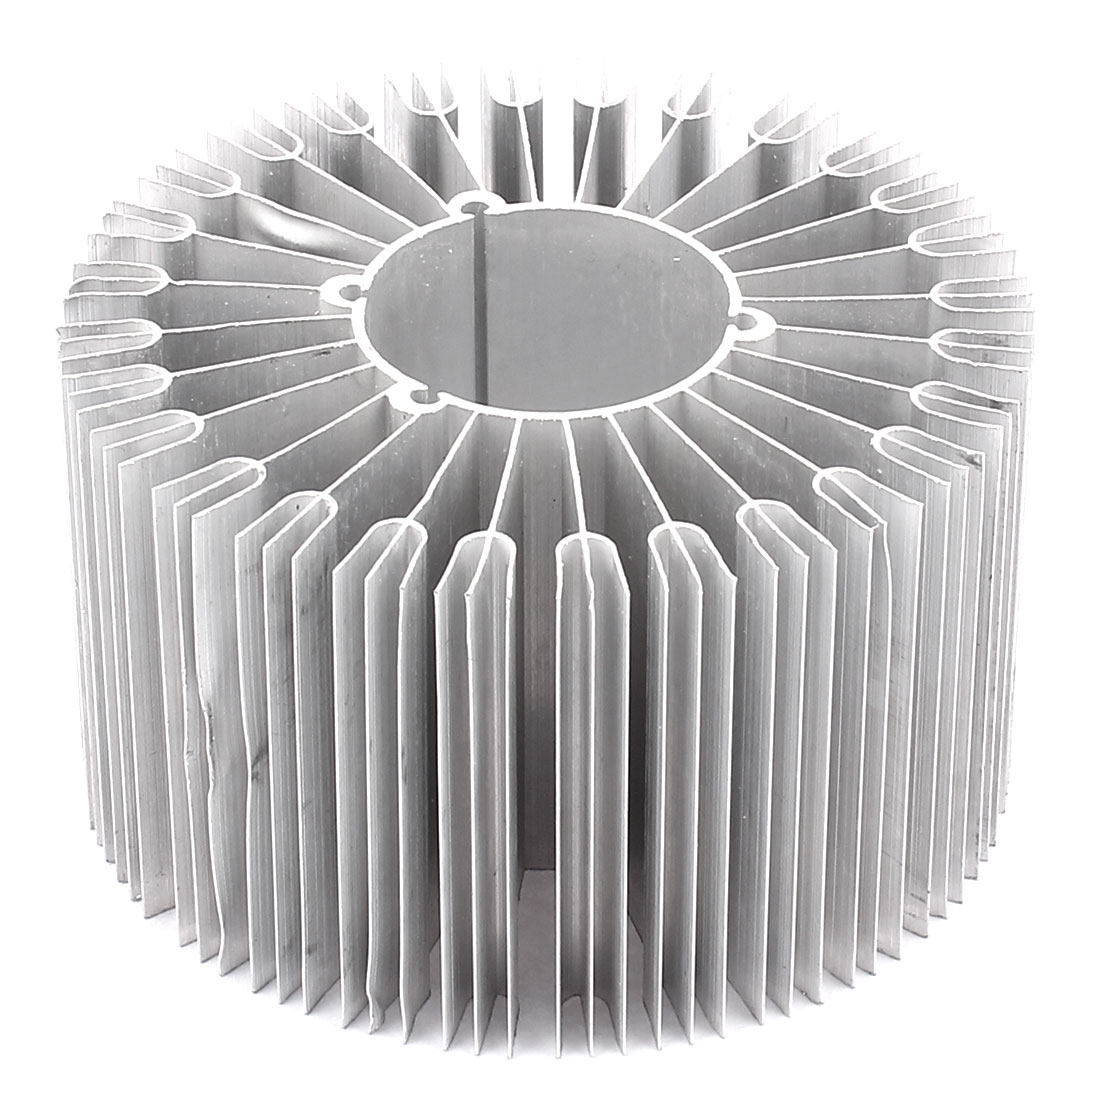 Led Lamp Aluminum Heatsink Radiator Cooling Fin 86mmx32mmx50mm Silver Tone